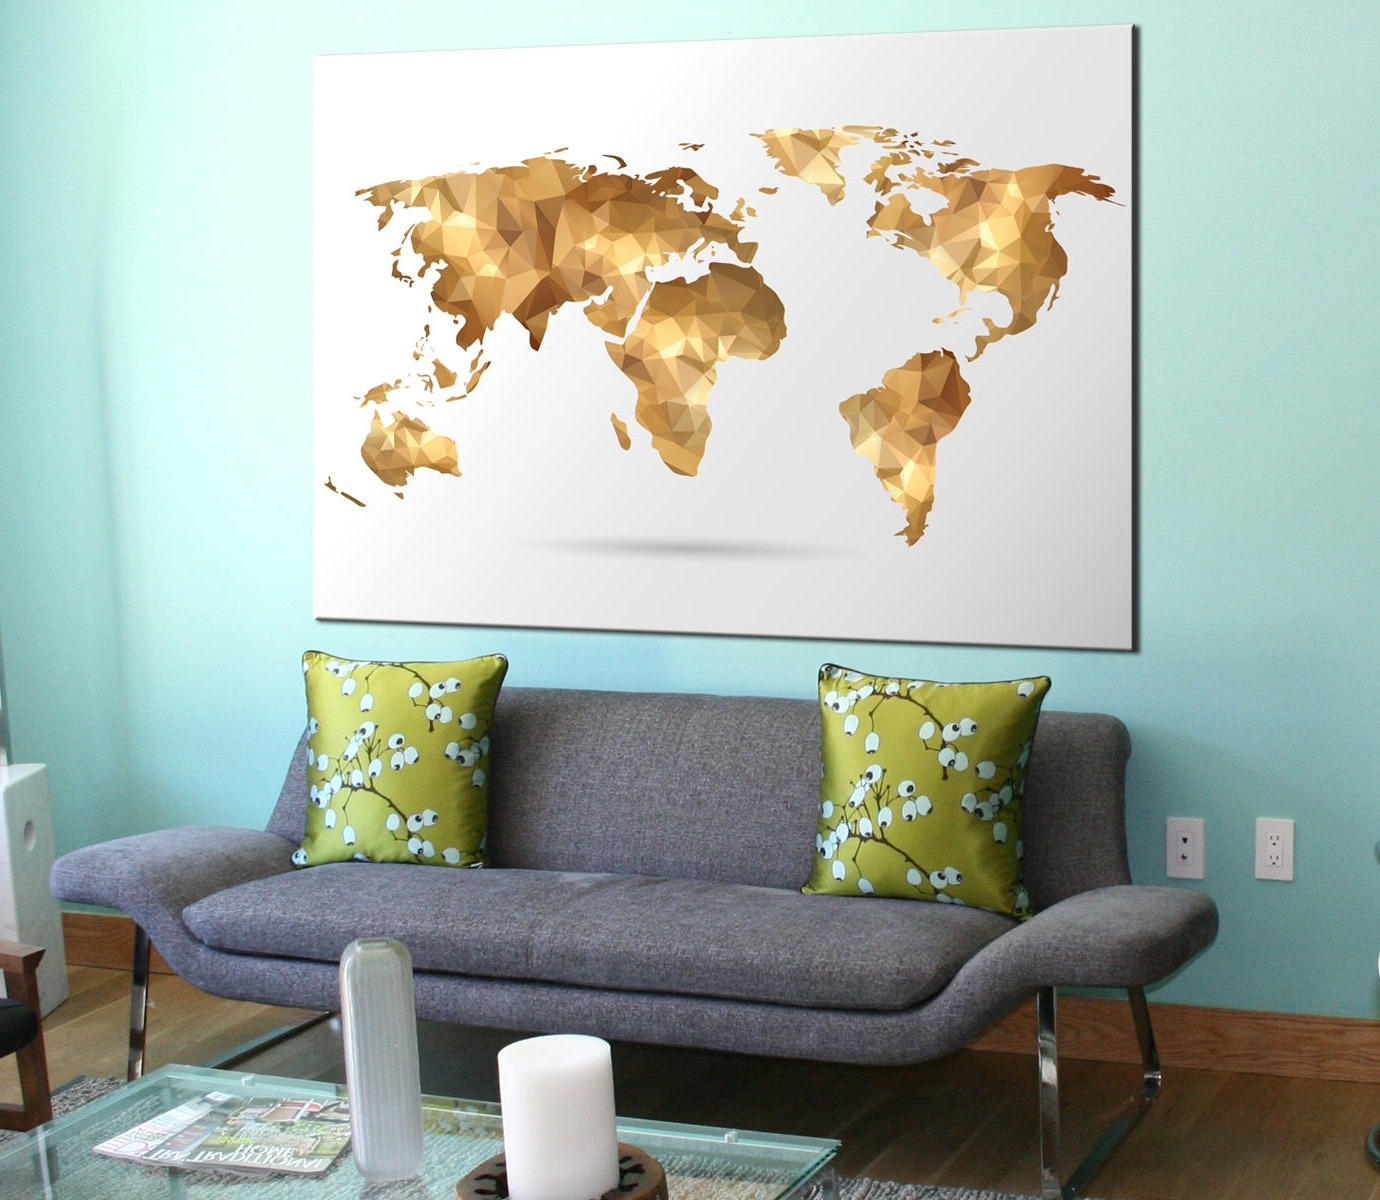 Most Popular Abstract World Map Wall Art Intended For Golden Geometric World Map Canvas Panels Set, Large Modern (View 11 of 15)